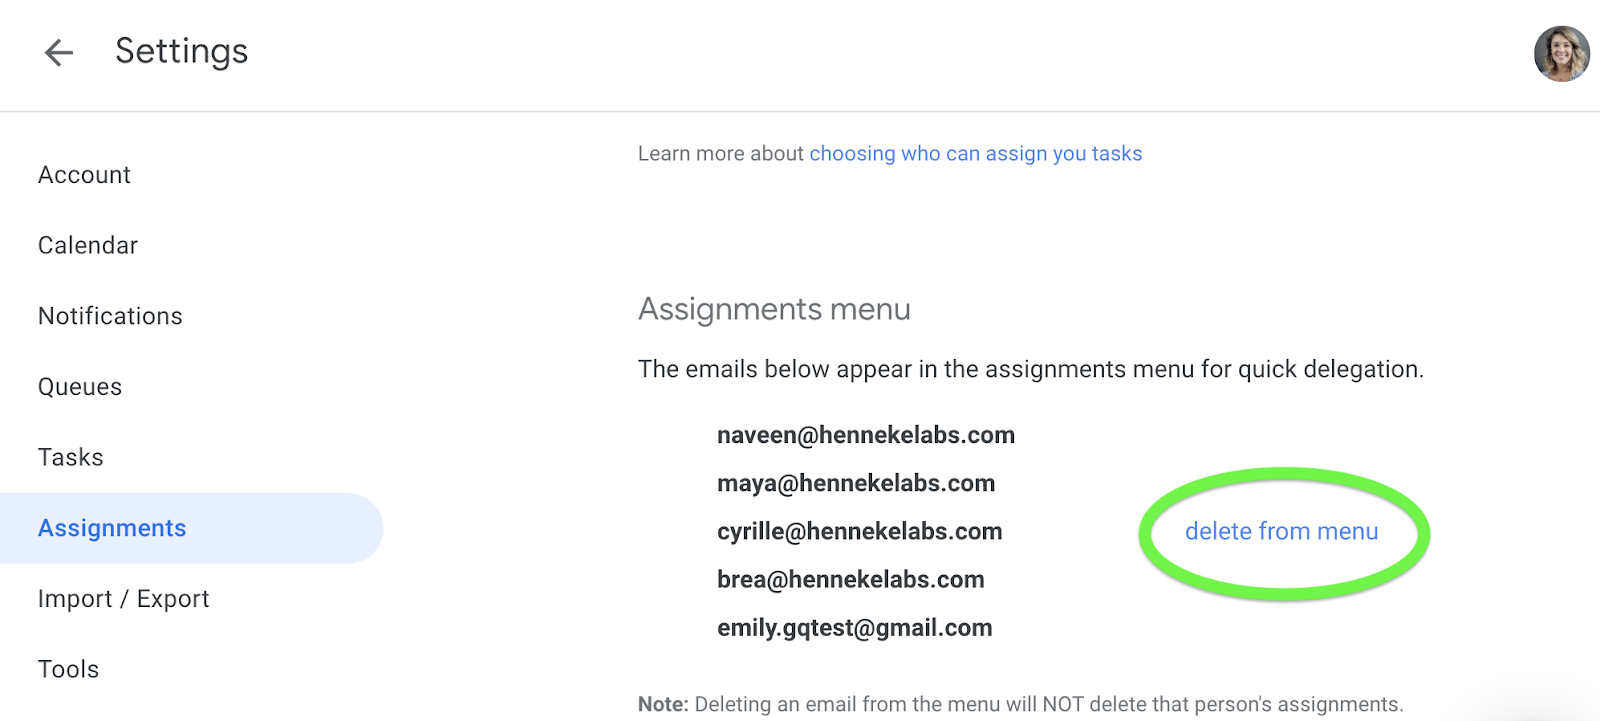 Assignments menu in GQueues settings with option to delete user from menu